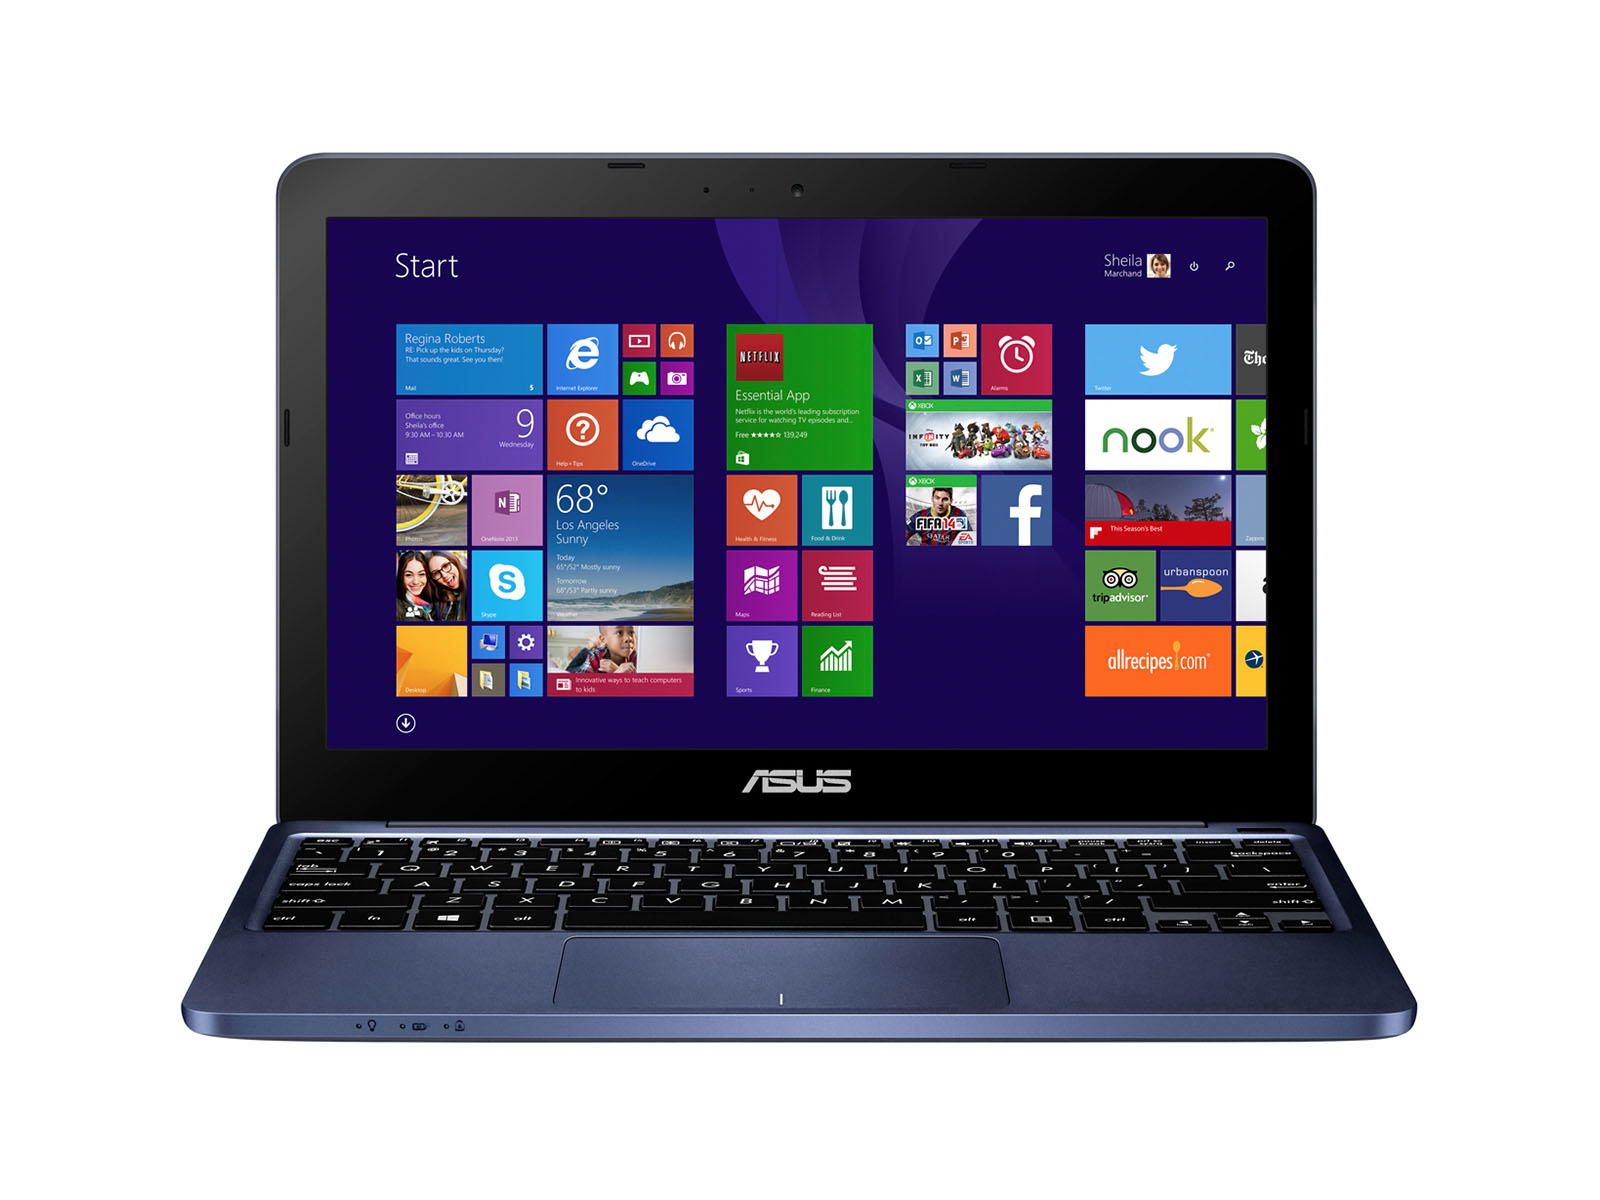 light-stylish-laptop-asus-eeebook-x205ta